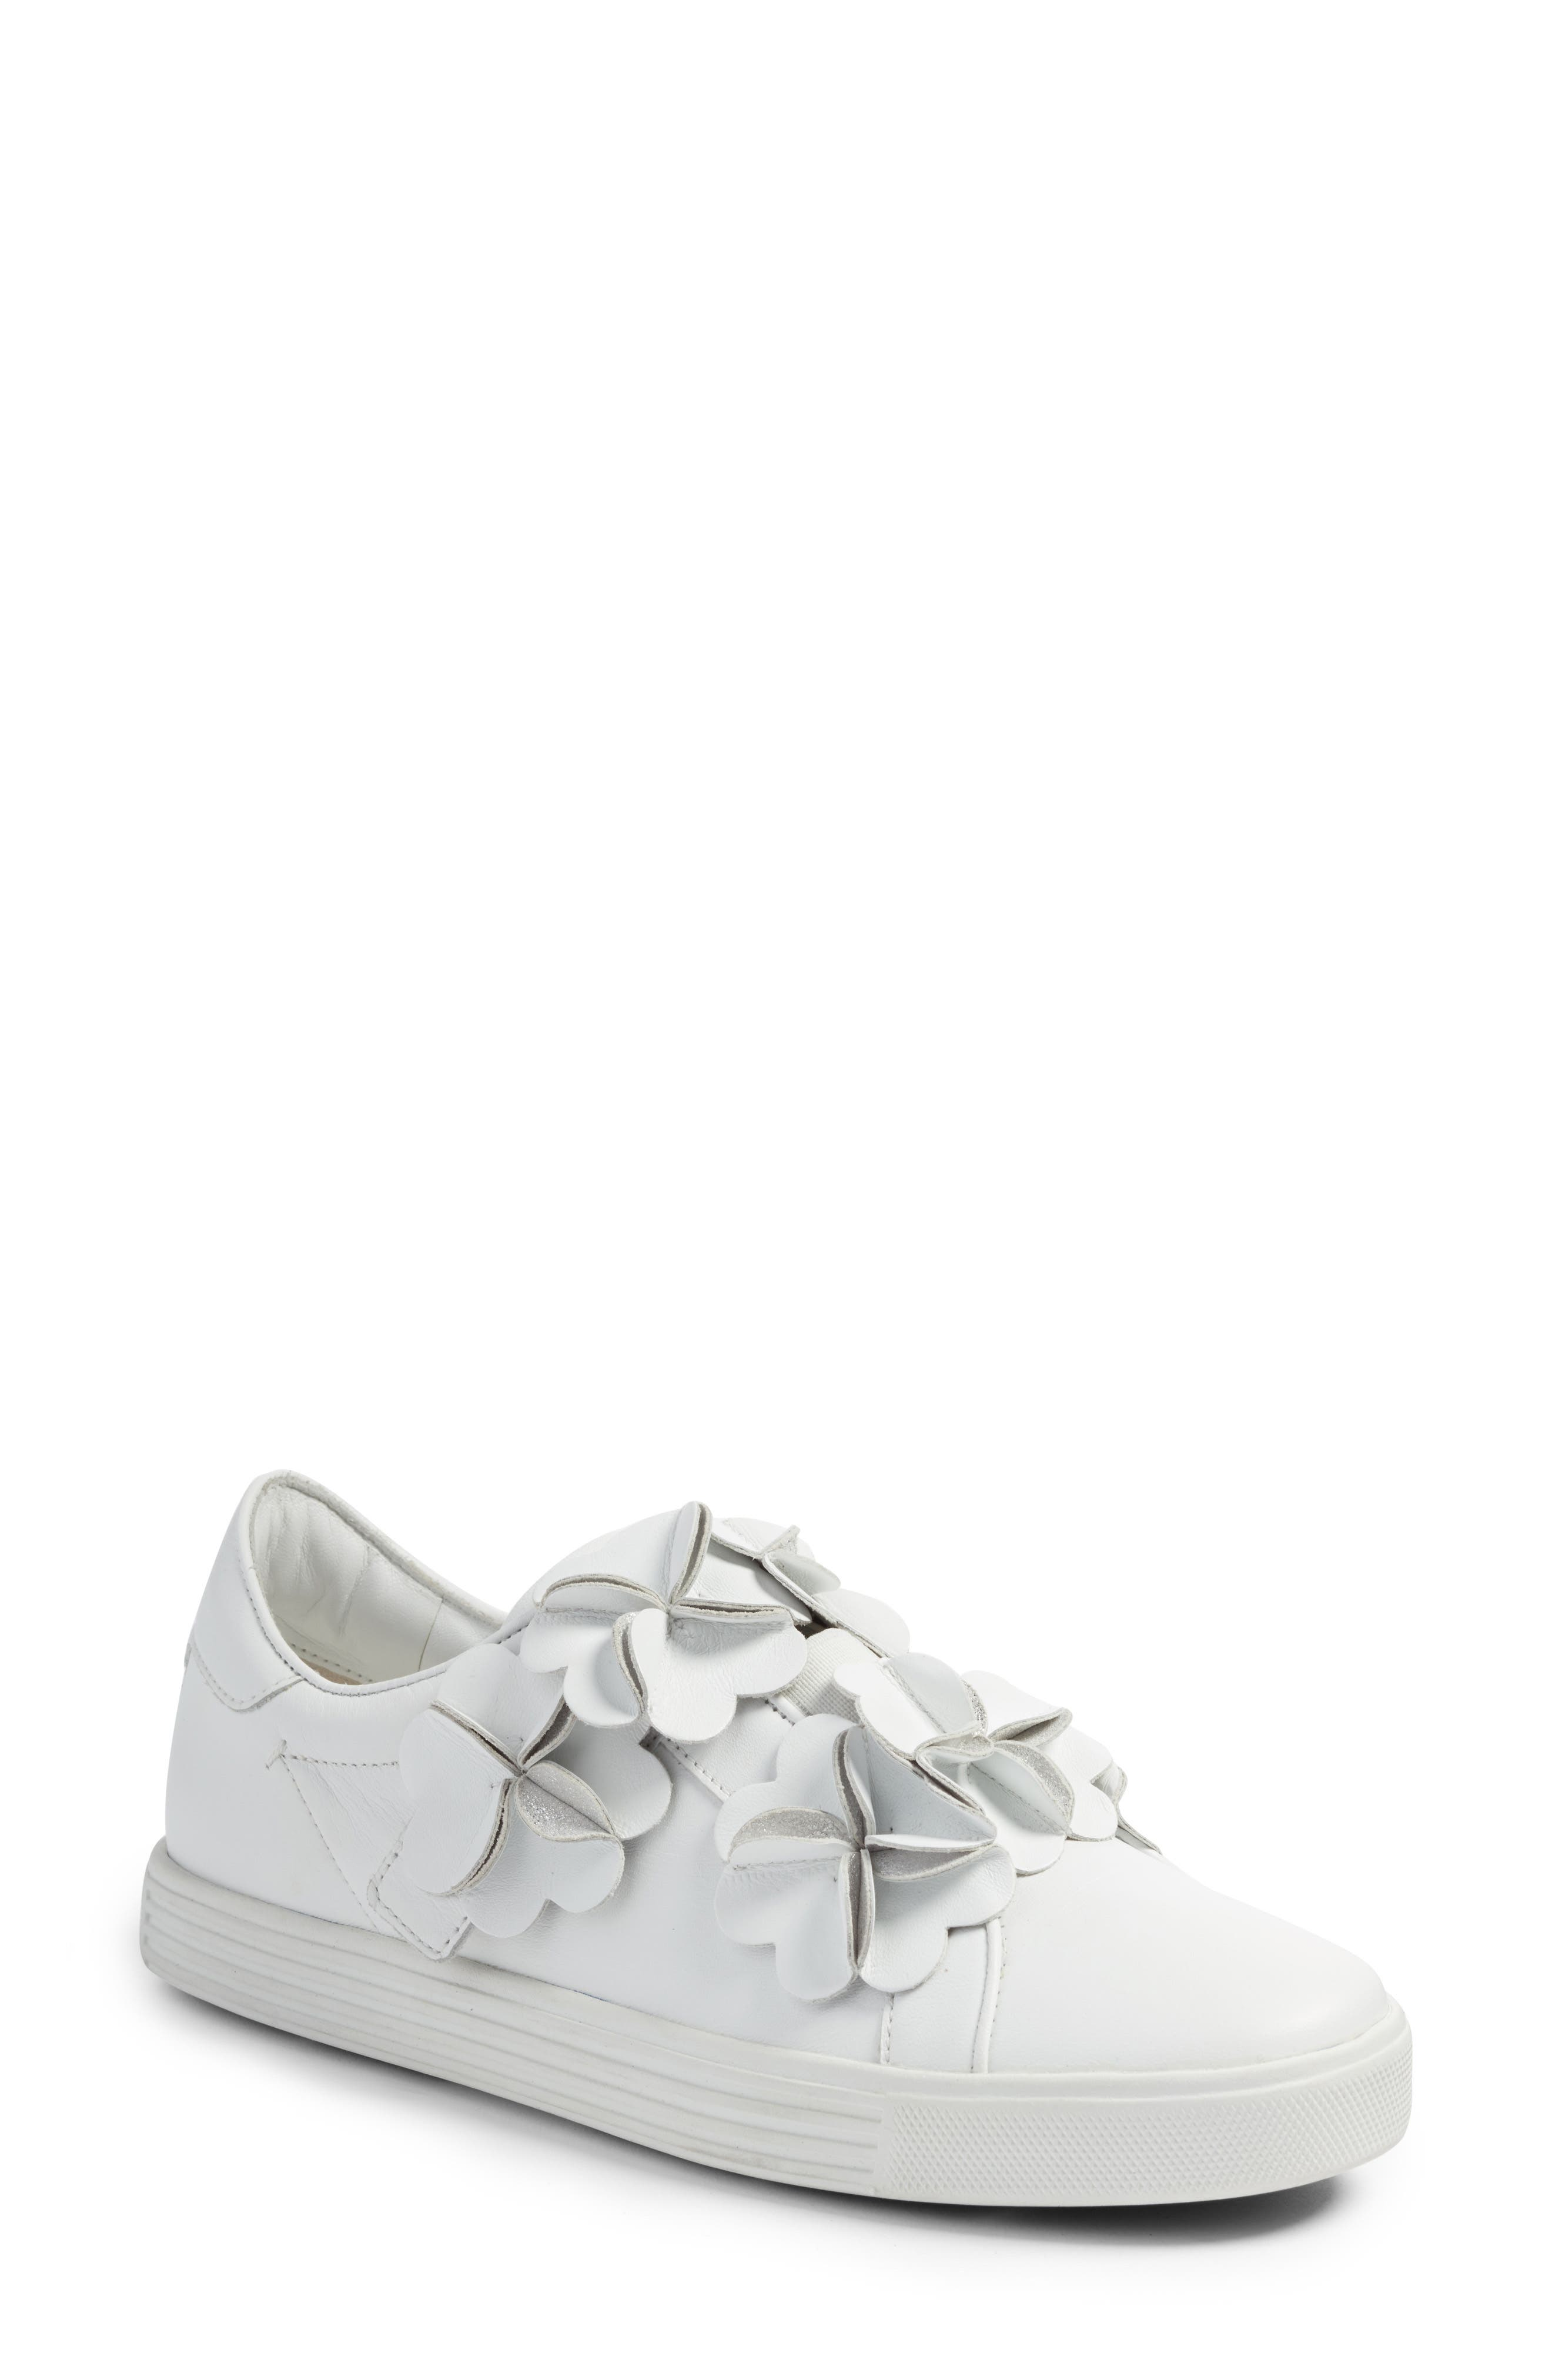 Kennel & Schmenger Town Floral Embellished Sneaker,                             Main thumbnail 1, color,                             White/ Silver